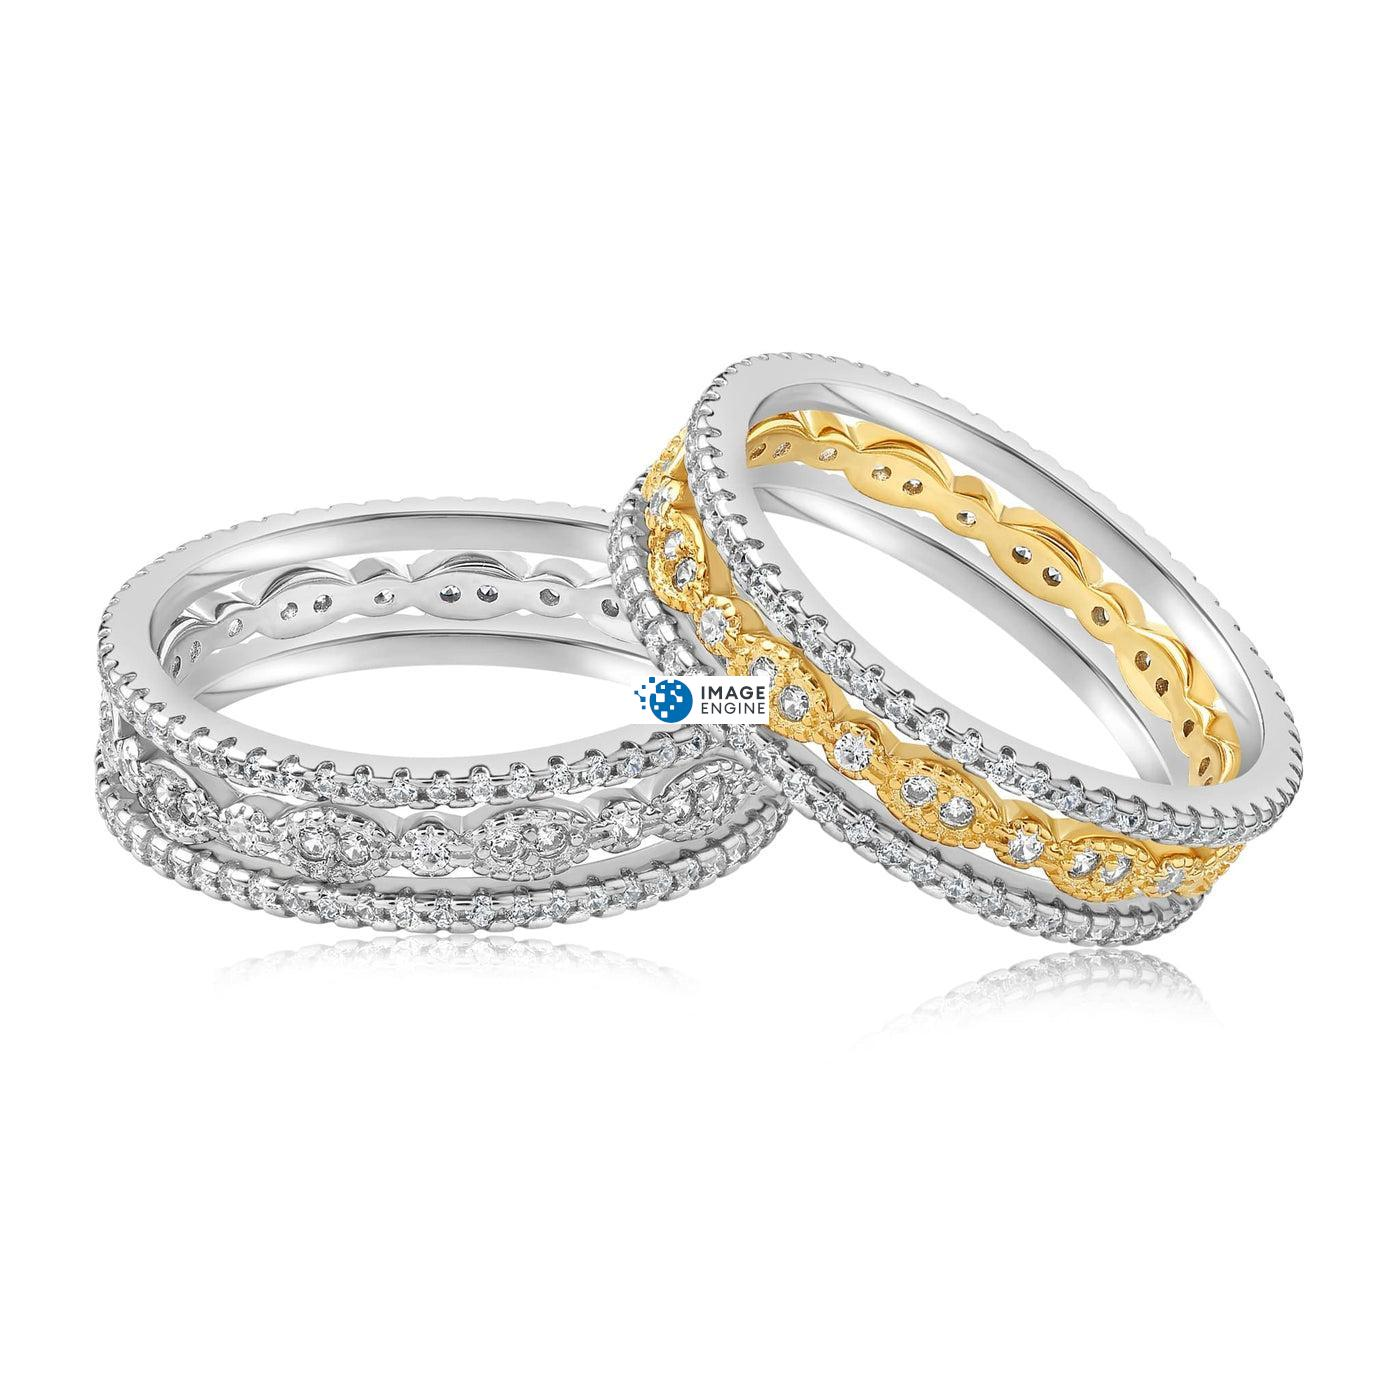 Juliana 3 Ring Set - Front View Side by Side - 18K Yellow Gold Vermeil and 925 Sterling Silver